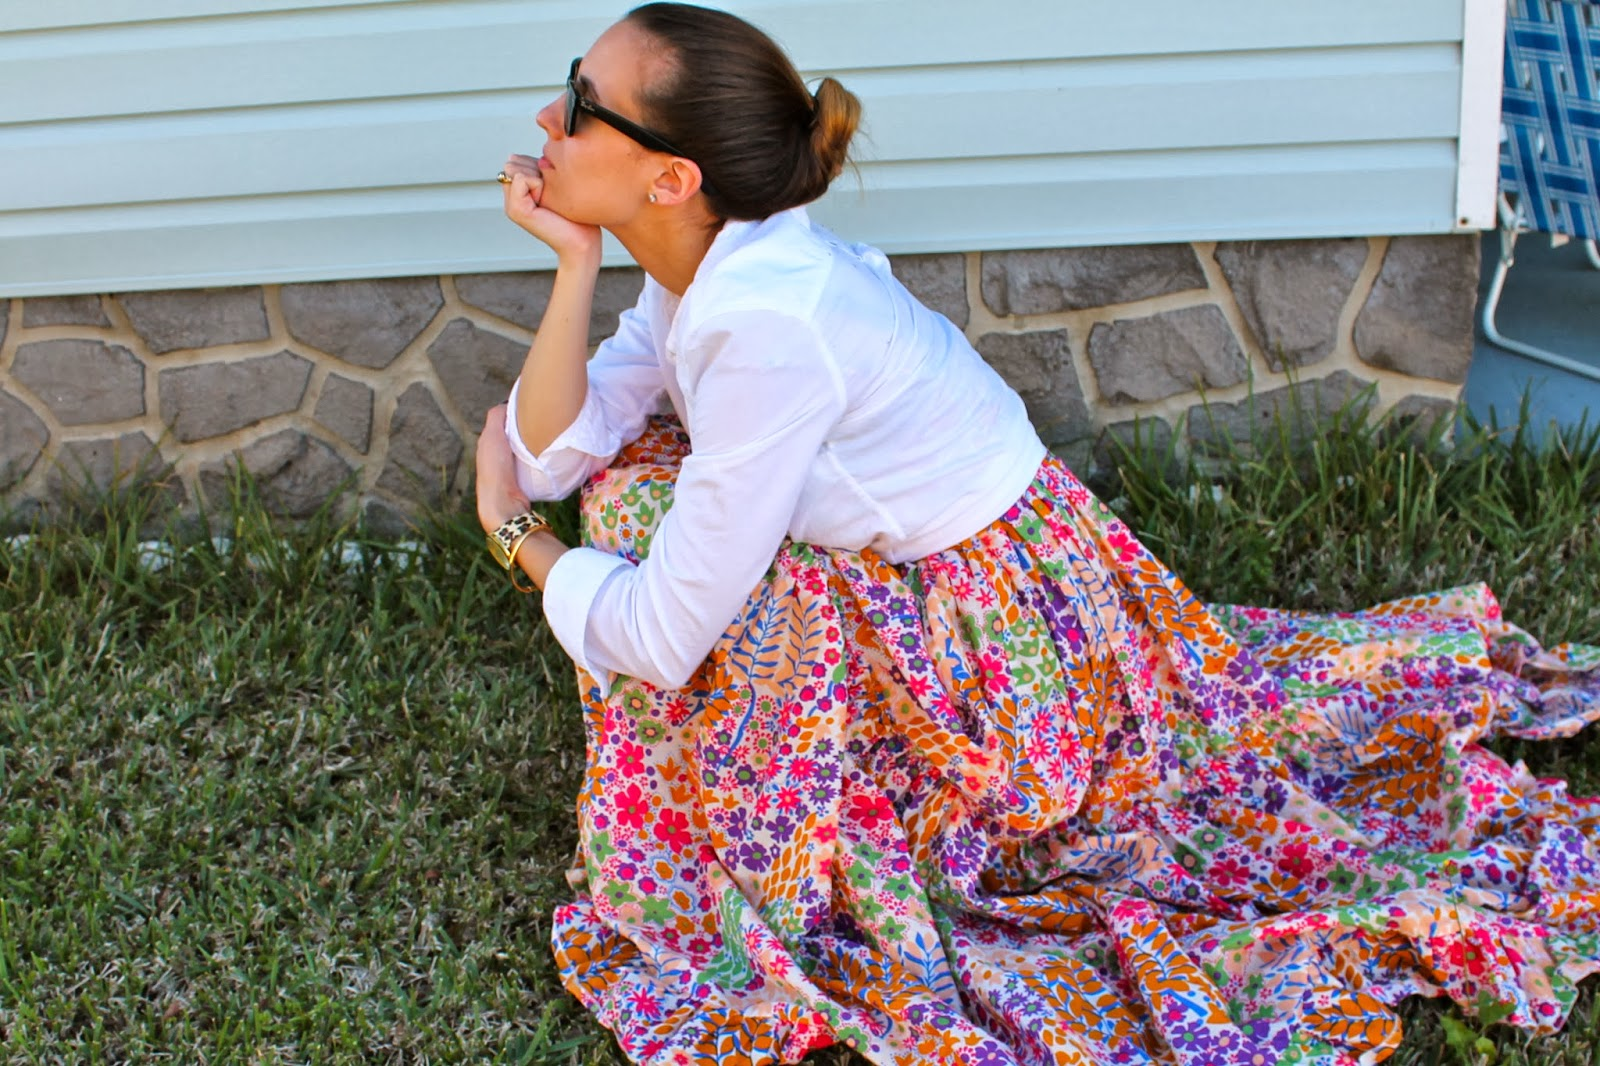 Ray-Ban, Modcloth, Target, Gap, Kate Spade, maxi dress, floral, leopard, elegant, feminine, preppy, southern, miami blogger, fashion blog, ootd, what i wore, look book, street style